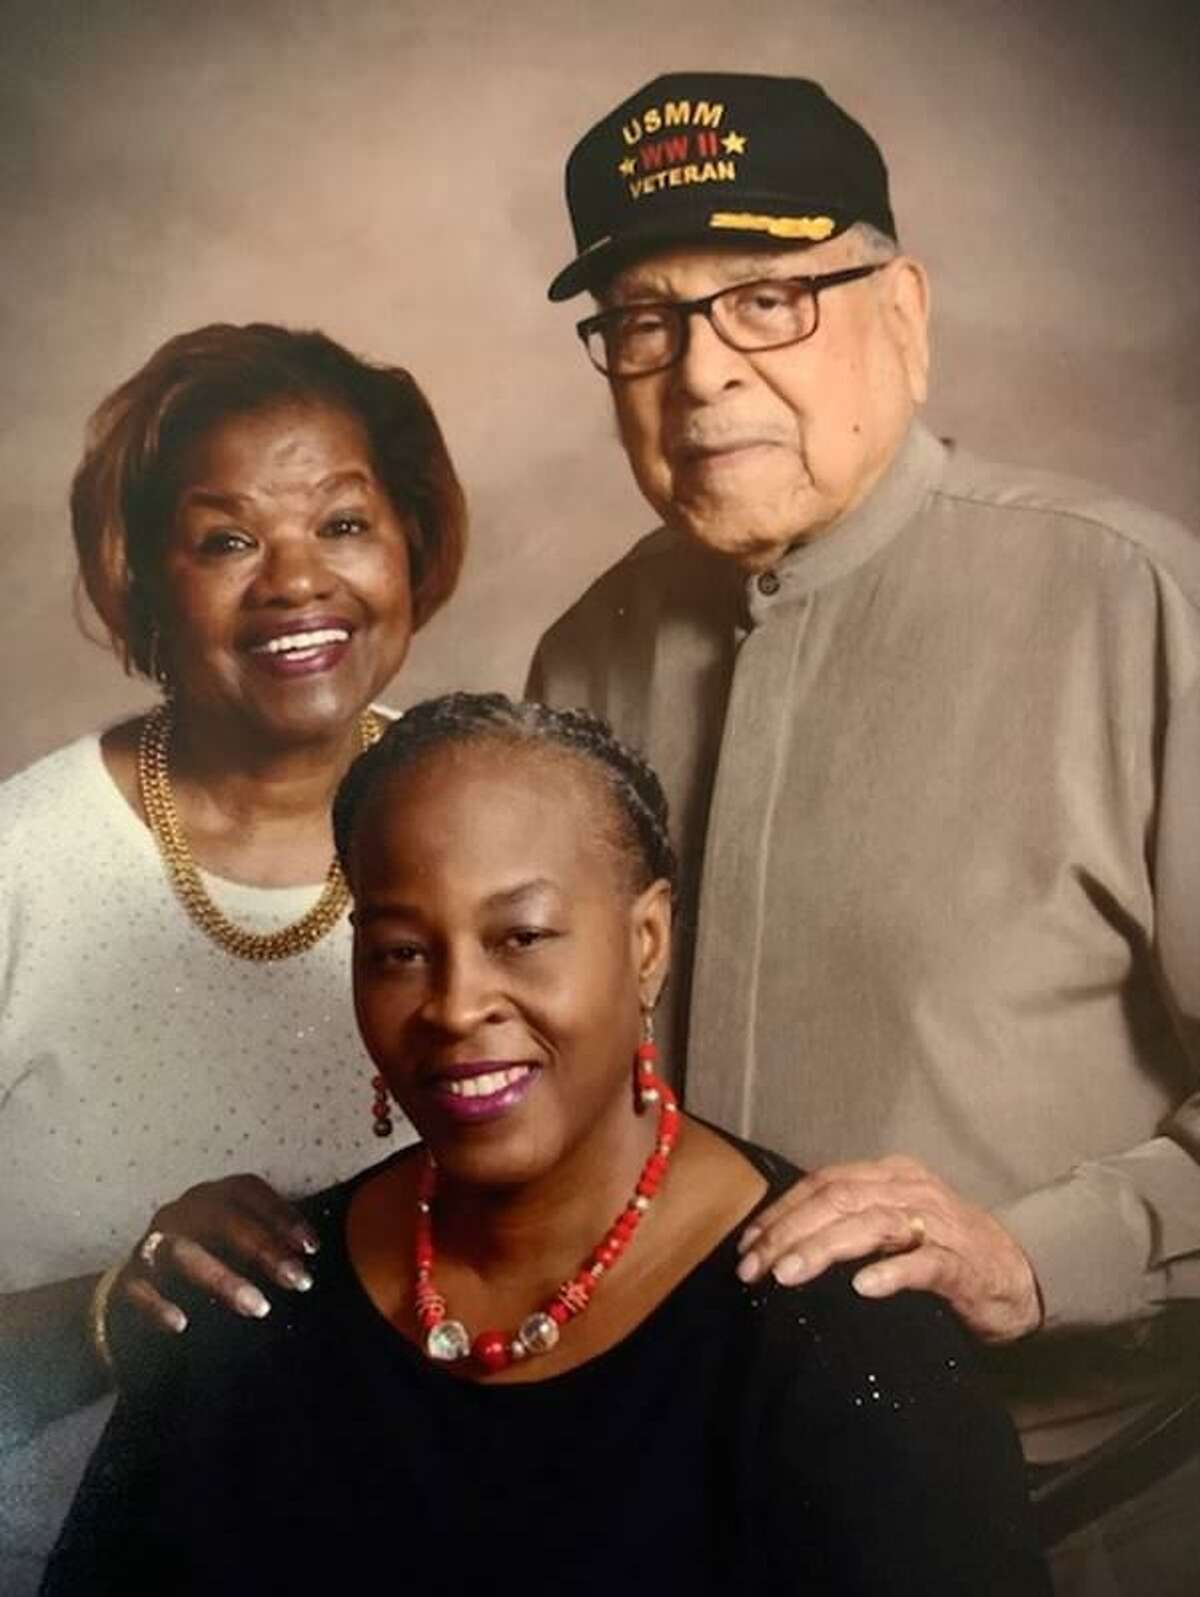 Galveston-born Charles Mills, 101, joined the merchant marines in 1937, serving during some of the most turbulent times in global history.